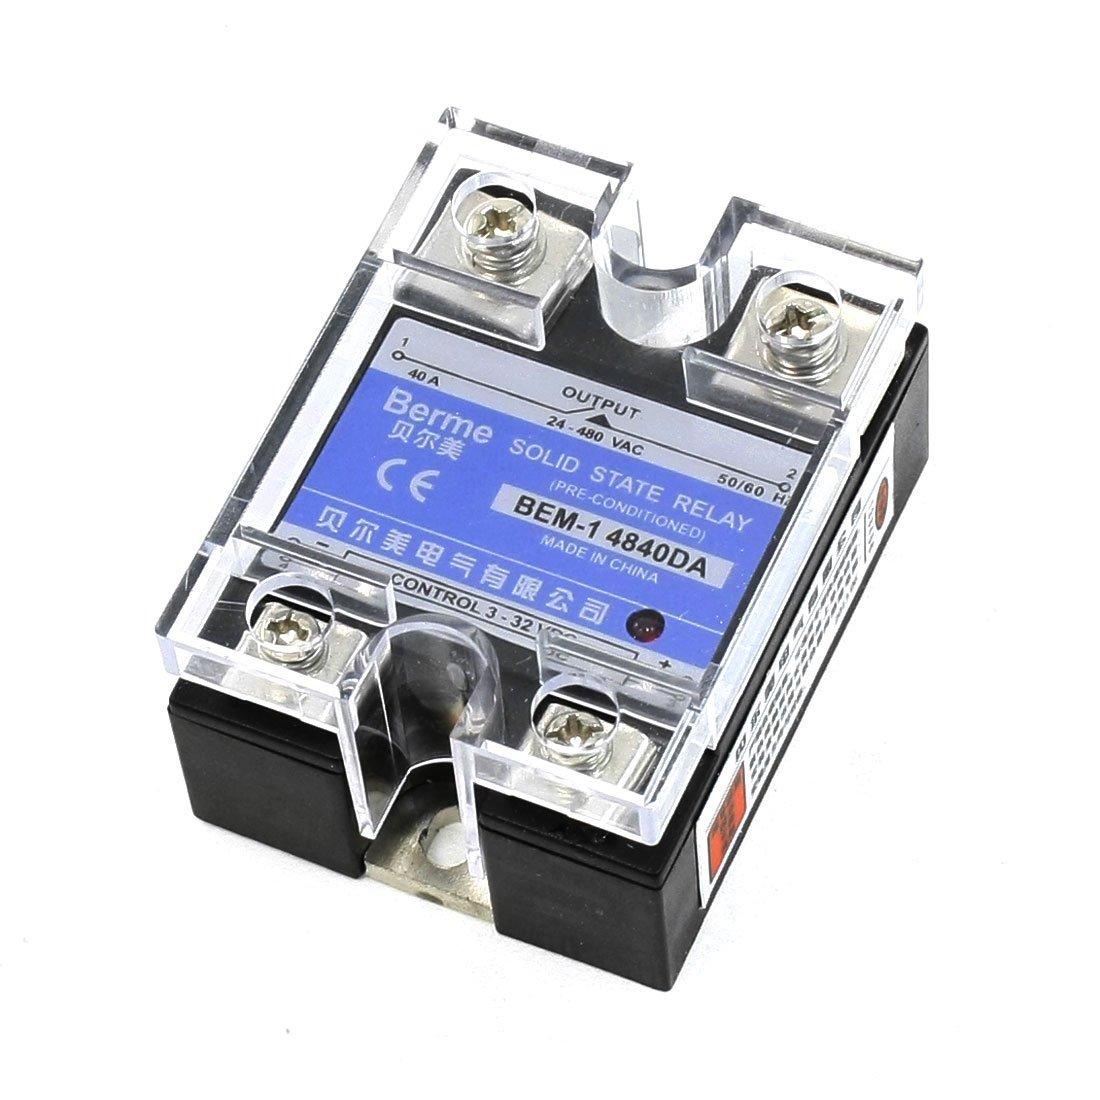 24-480V AC DC to 3-32VDC Output Single Phase SSR Solid State Relay 40A mgr 1 d4825 single phase solid state relay ssr 25a dc 3 32v ac 24 480v